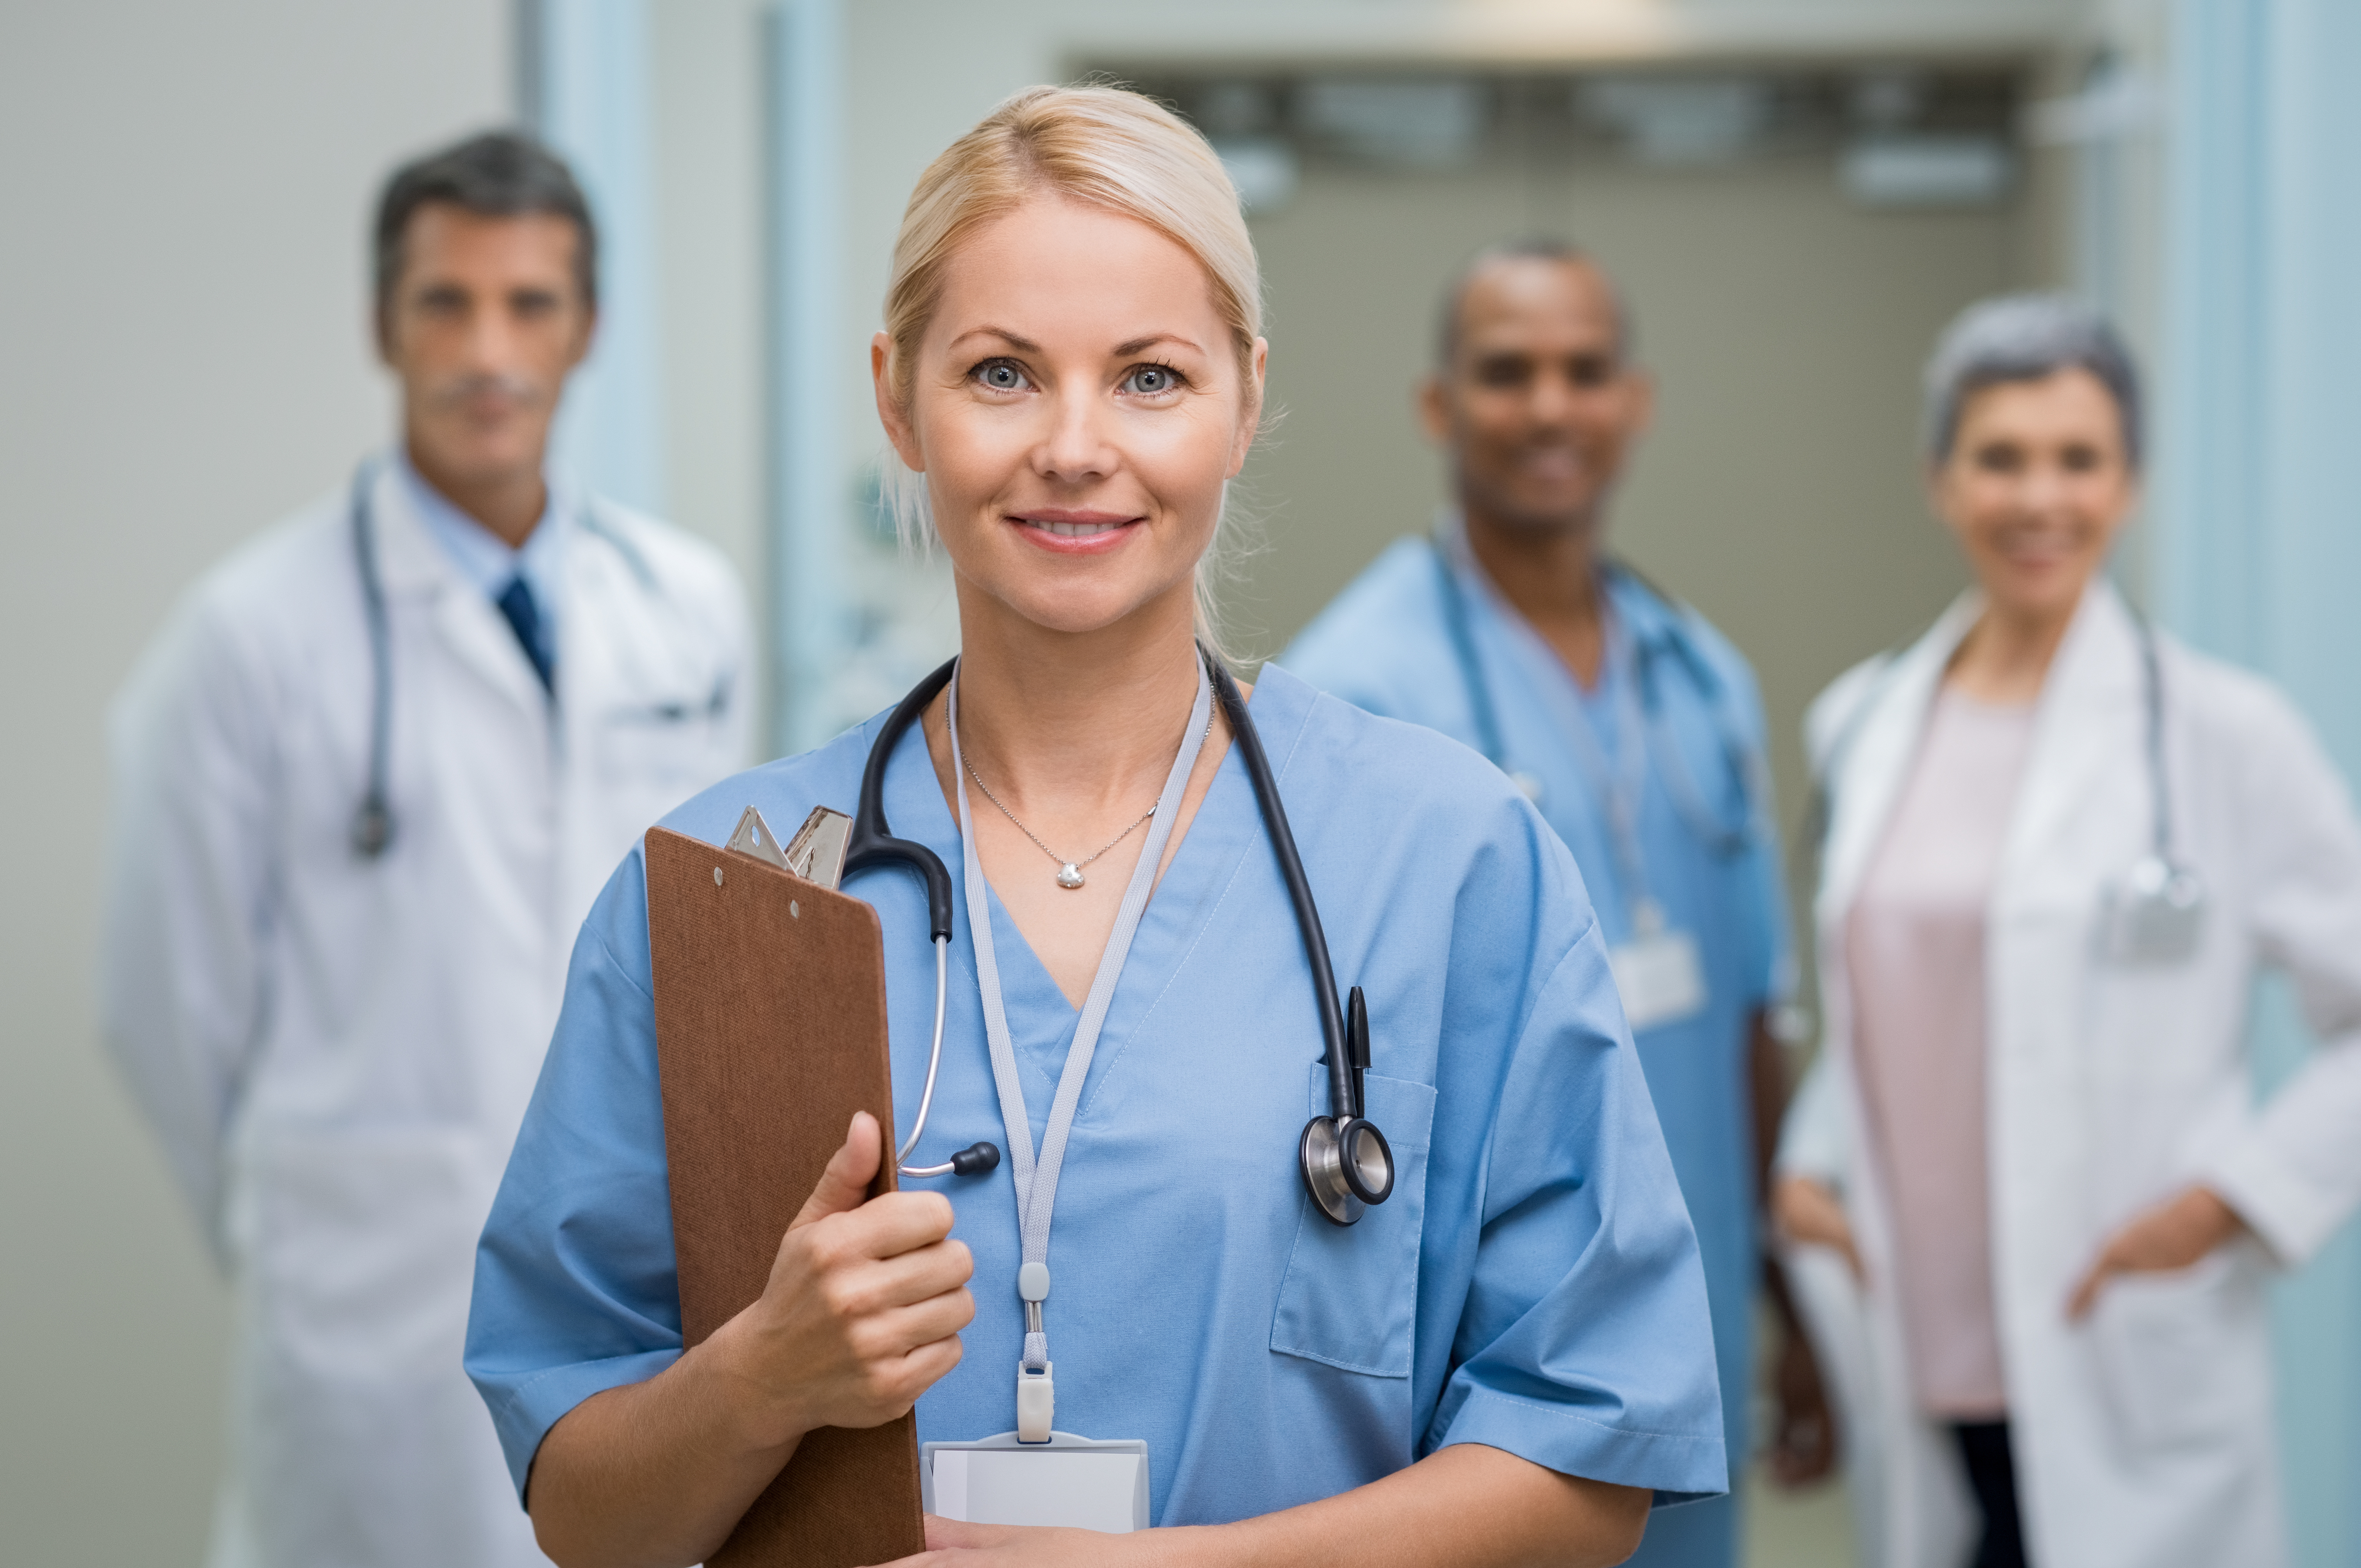 Nurse stands in forefront with doctors in the background, illustrating nurse leadership issues and burnout among nurses | healthcare news | Primaris